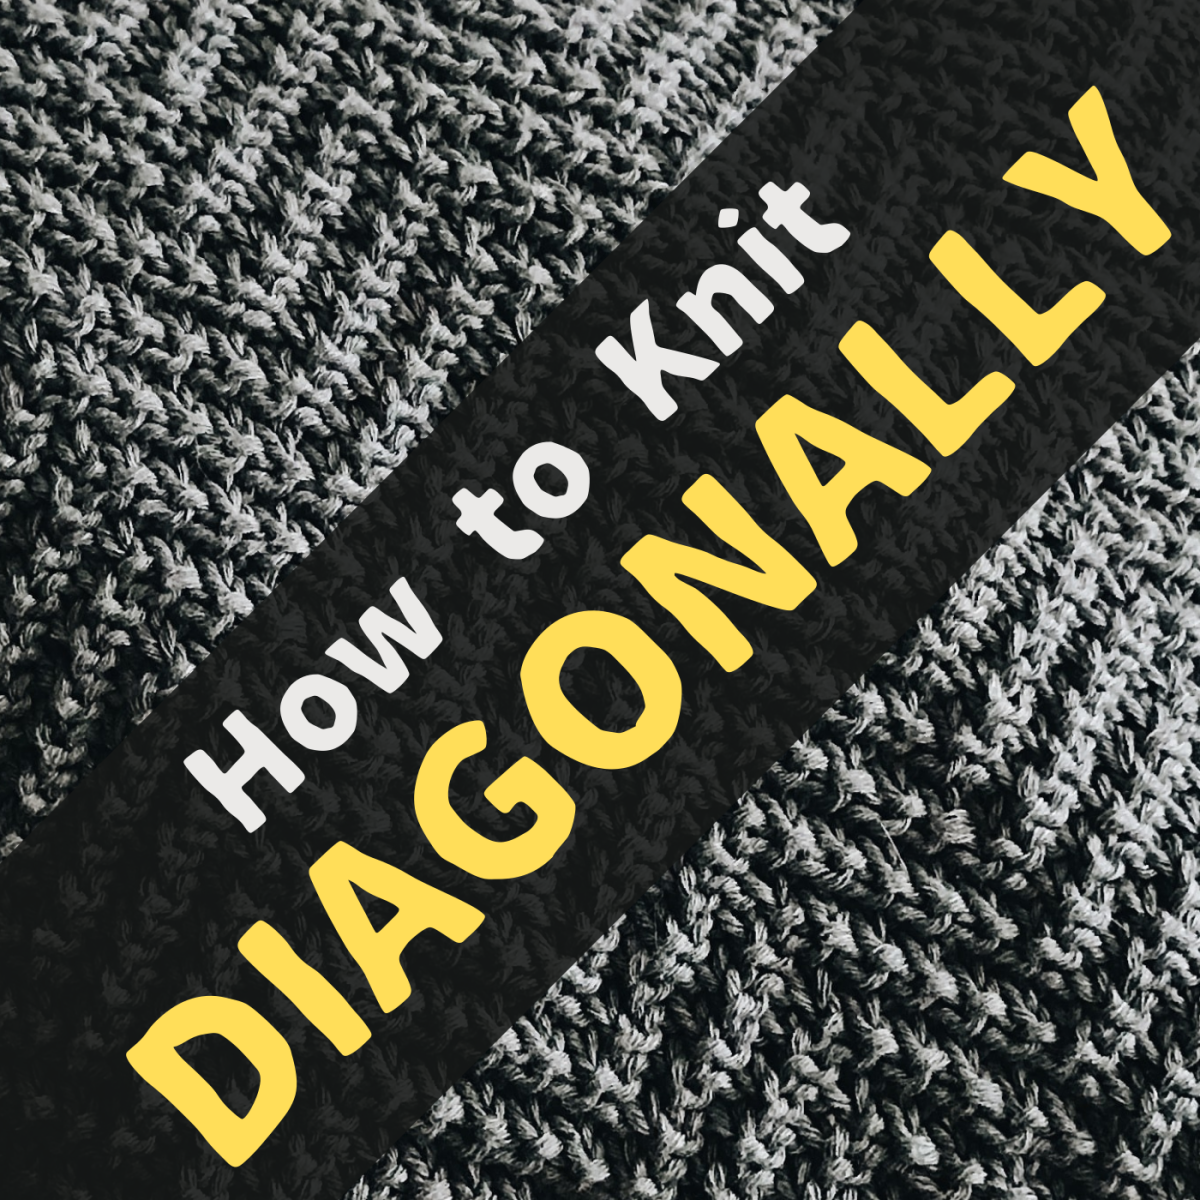 Discover some techniques for diagonal knitting, as well as some fun patterns.